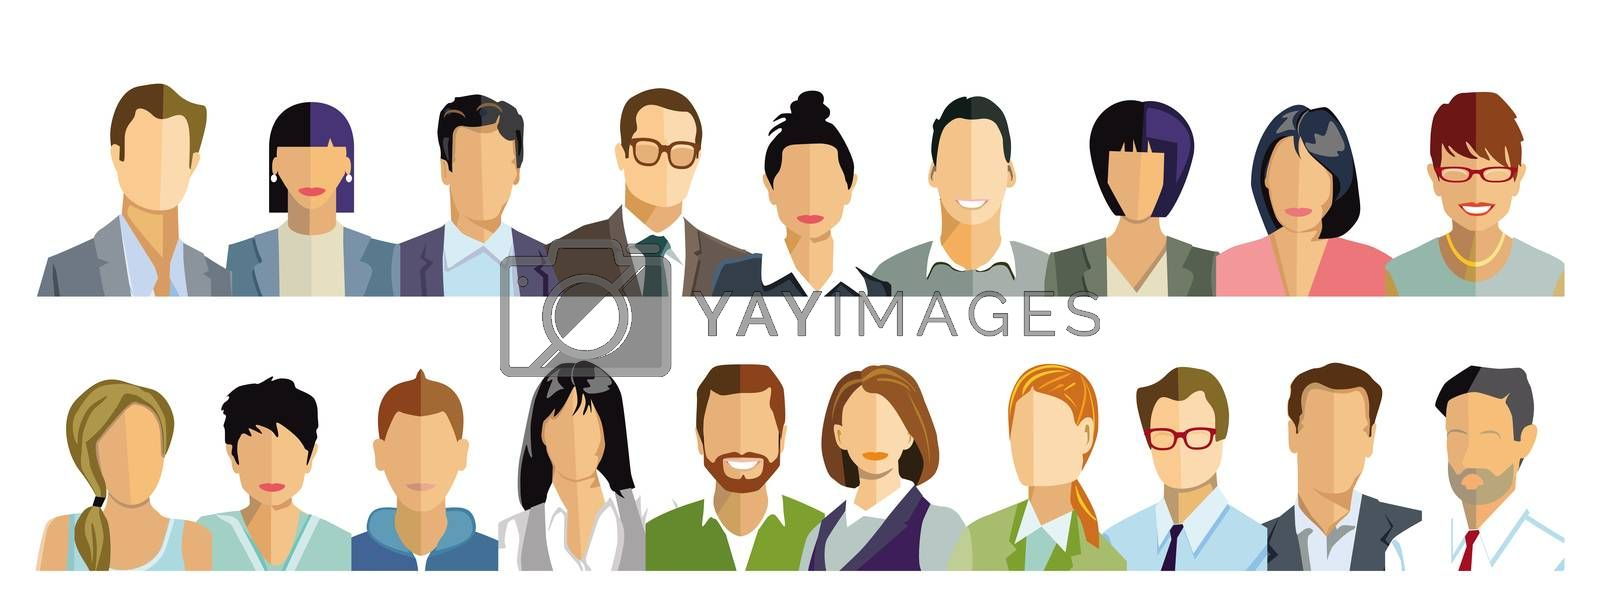 Royalty free image of Persons portrait, faces illustration by scusi